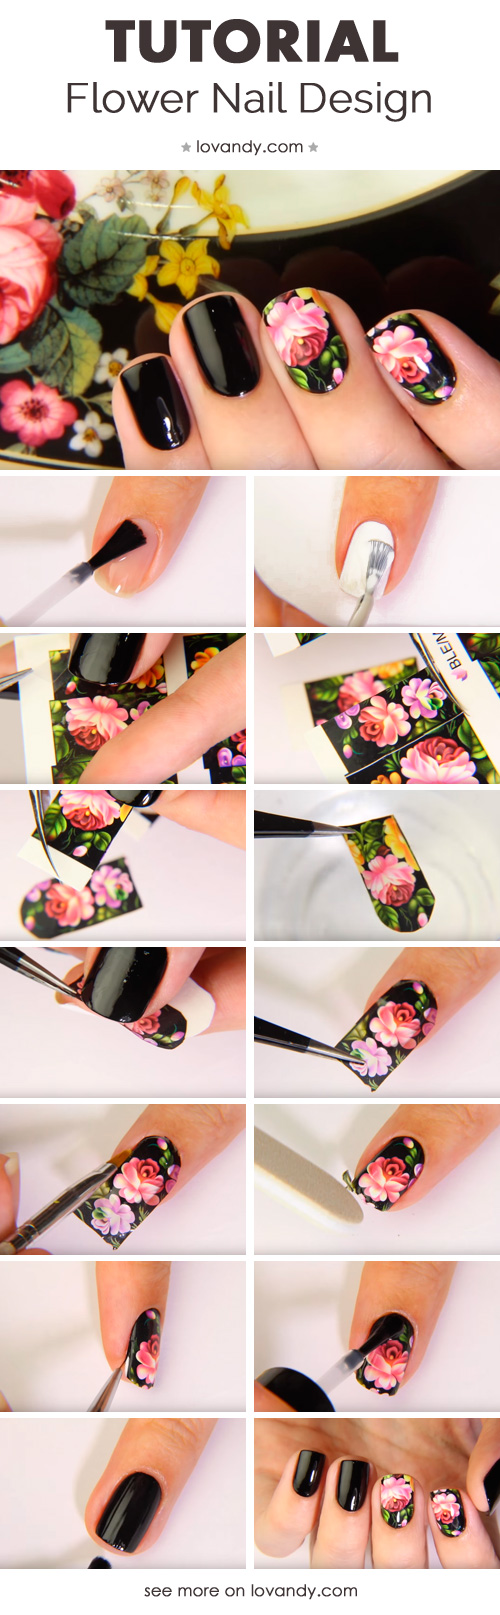 flower manicure looks amazing